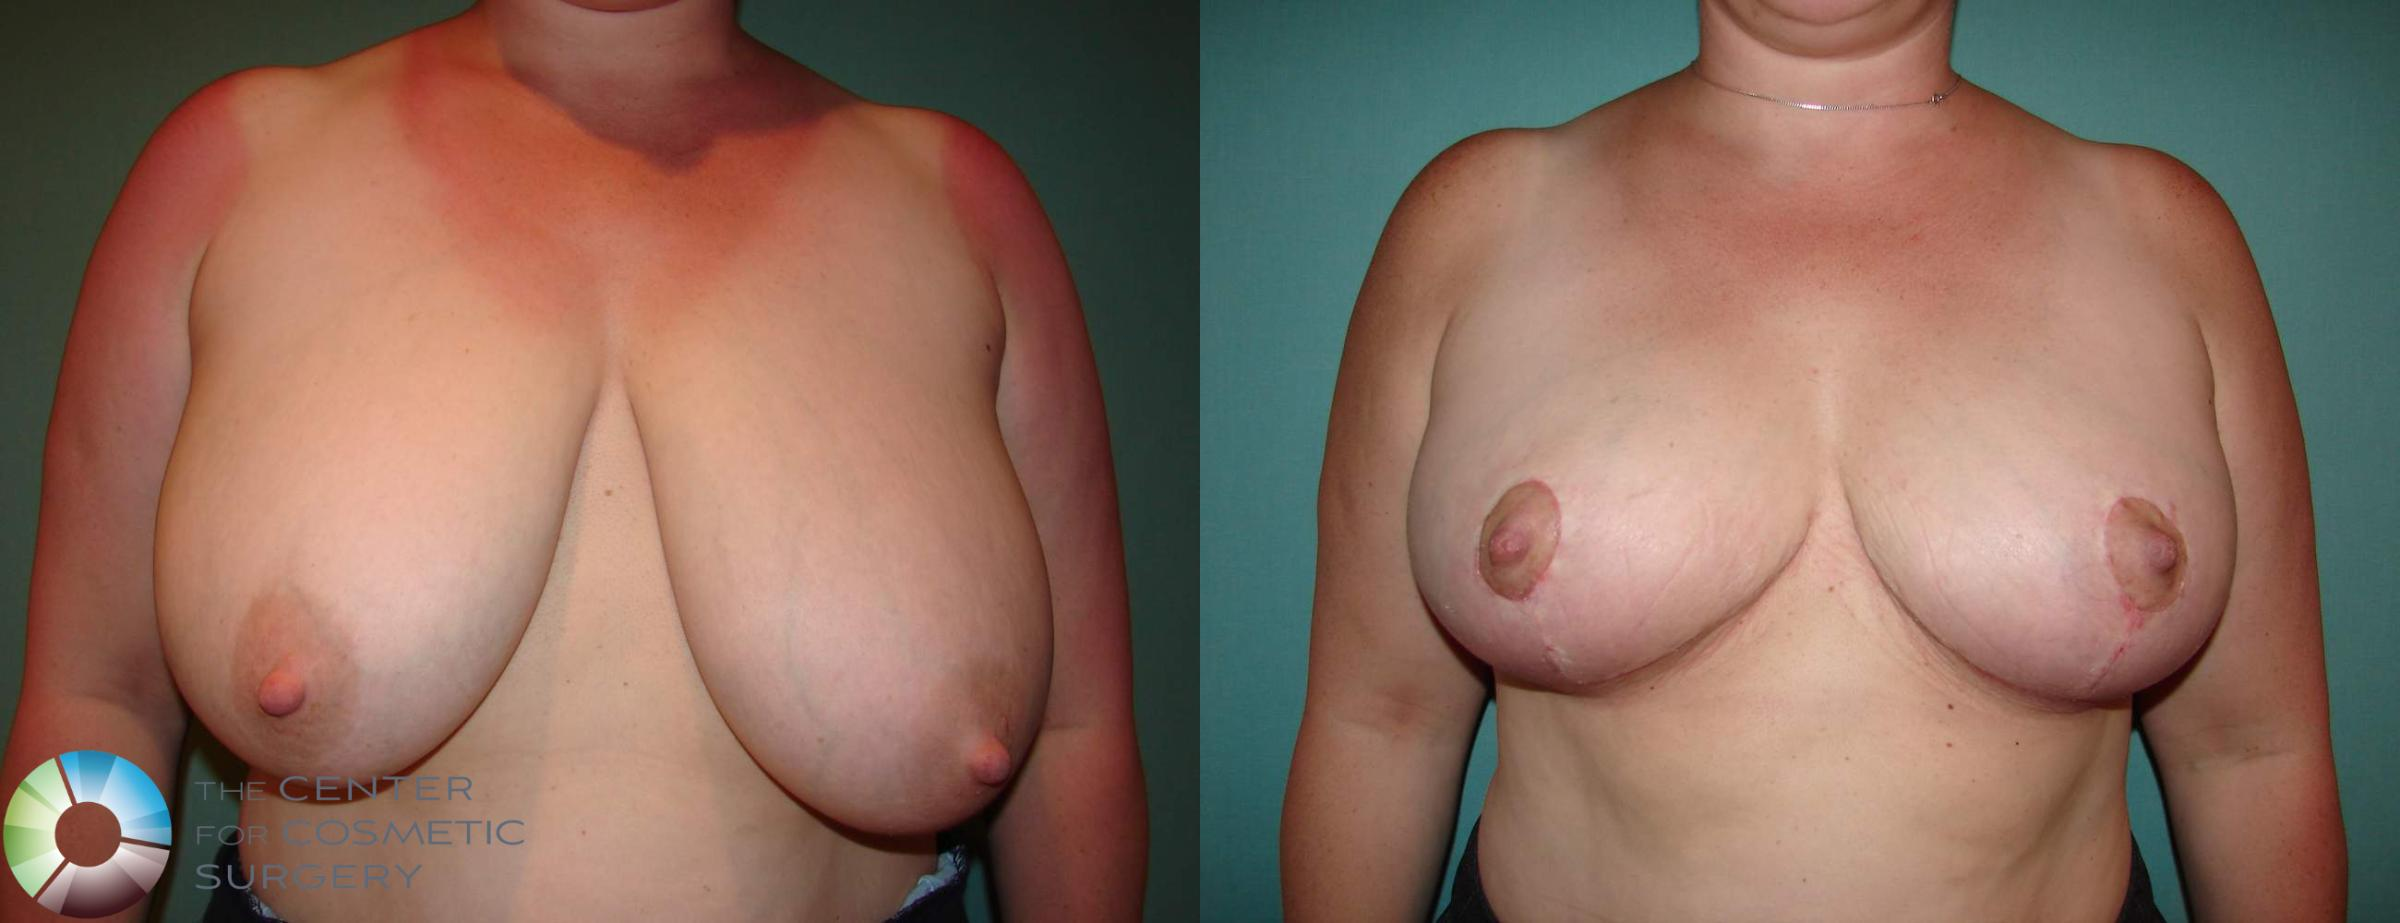 Breast Reduction Case 535 Before & After View #1 | Golden, CO | The Center for Cosmetic Surgery